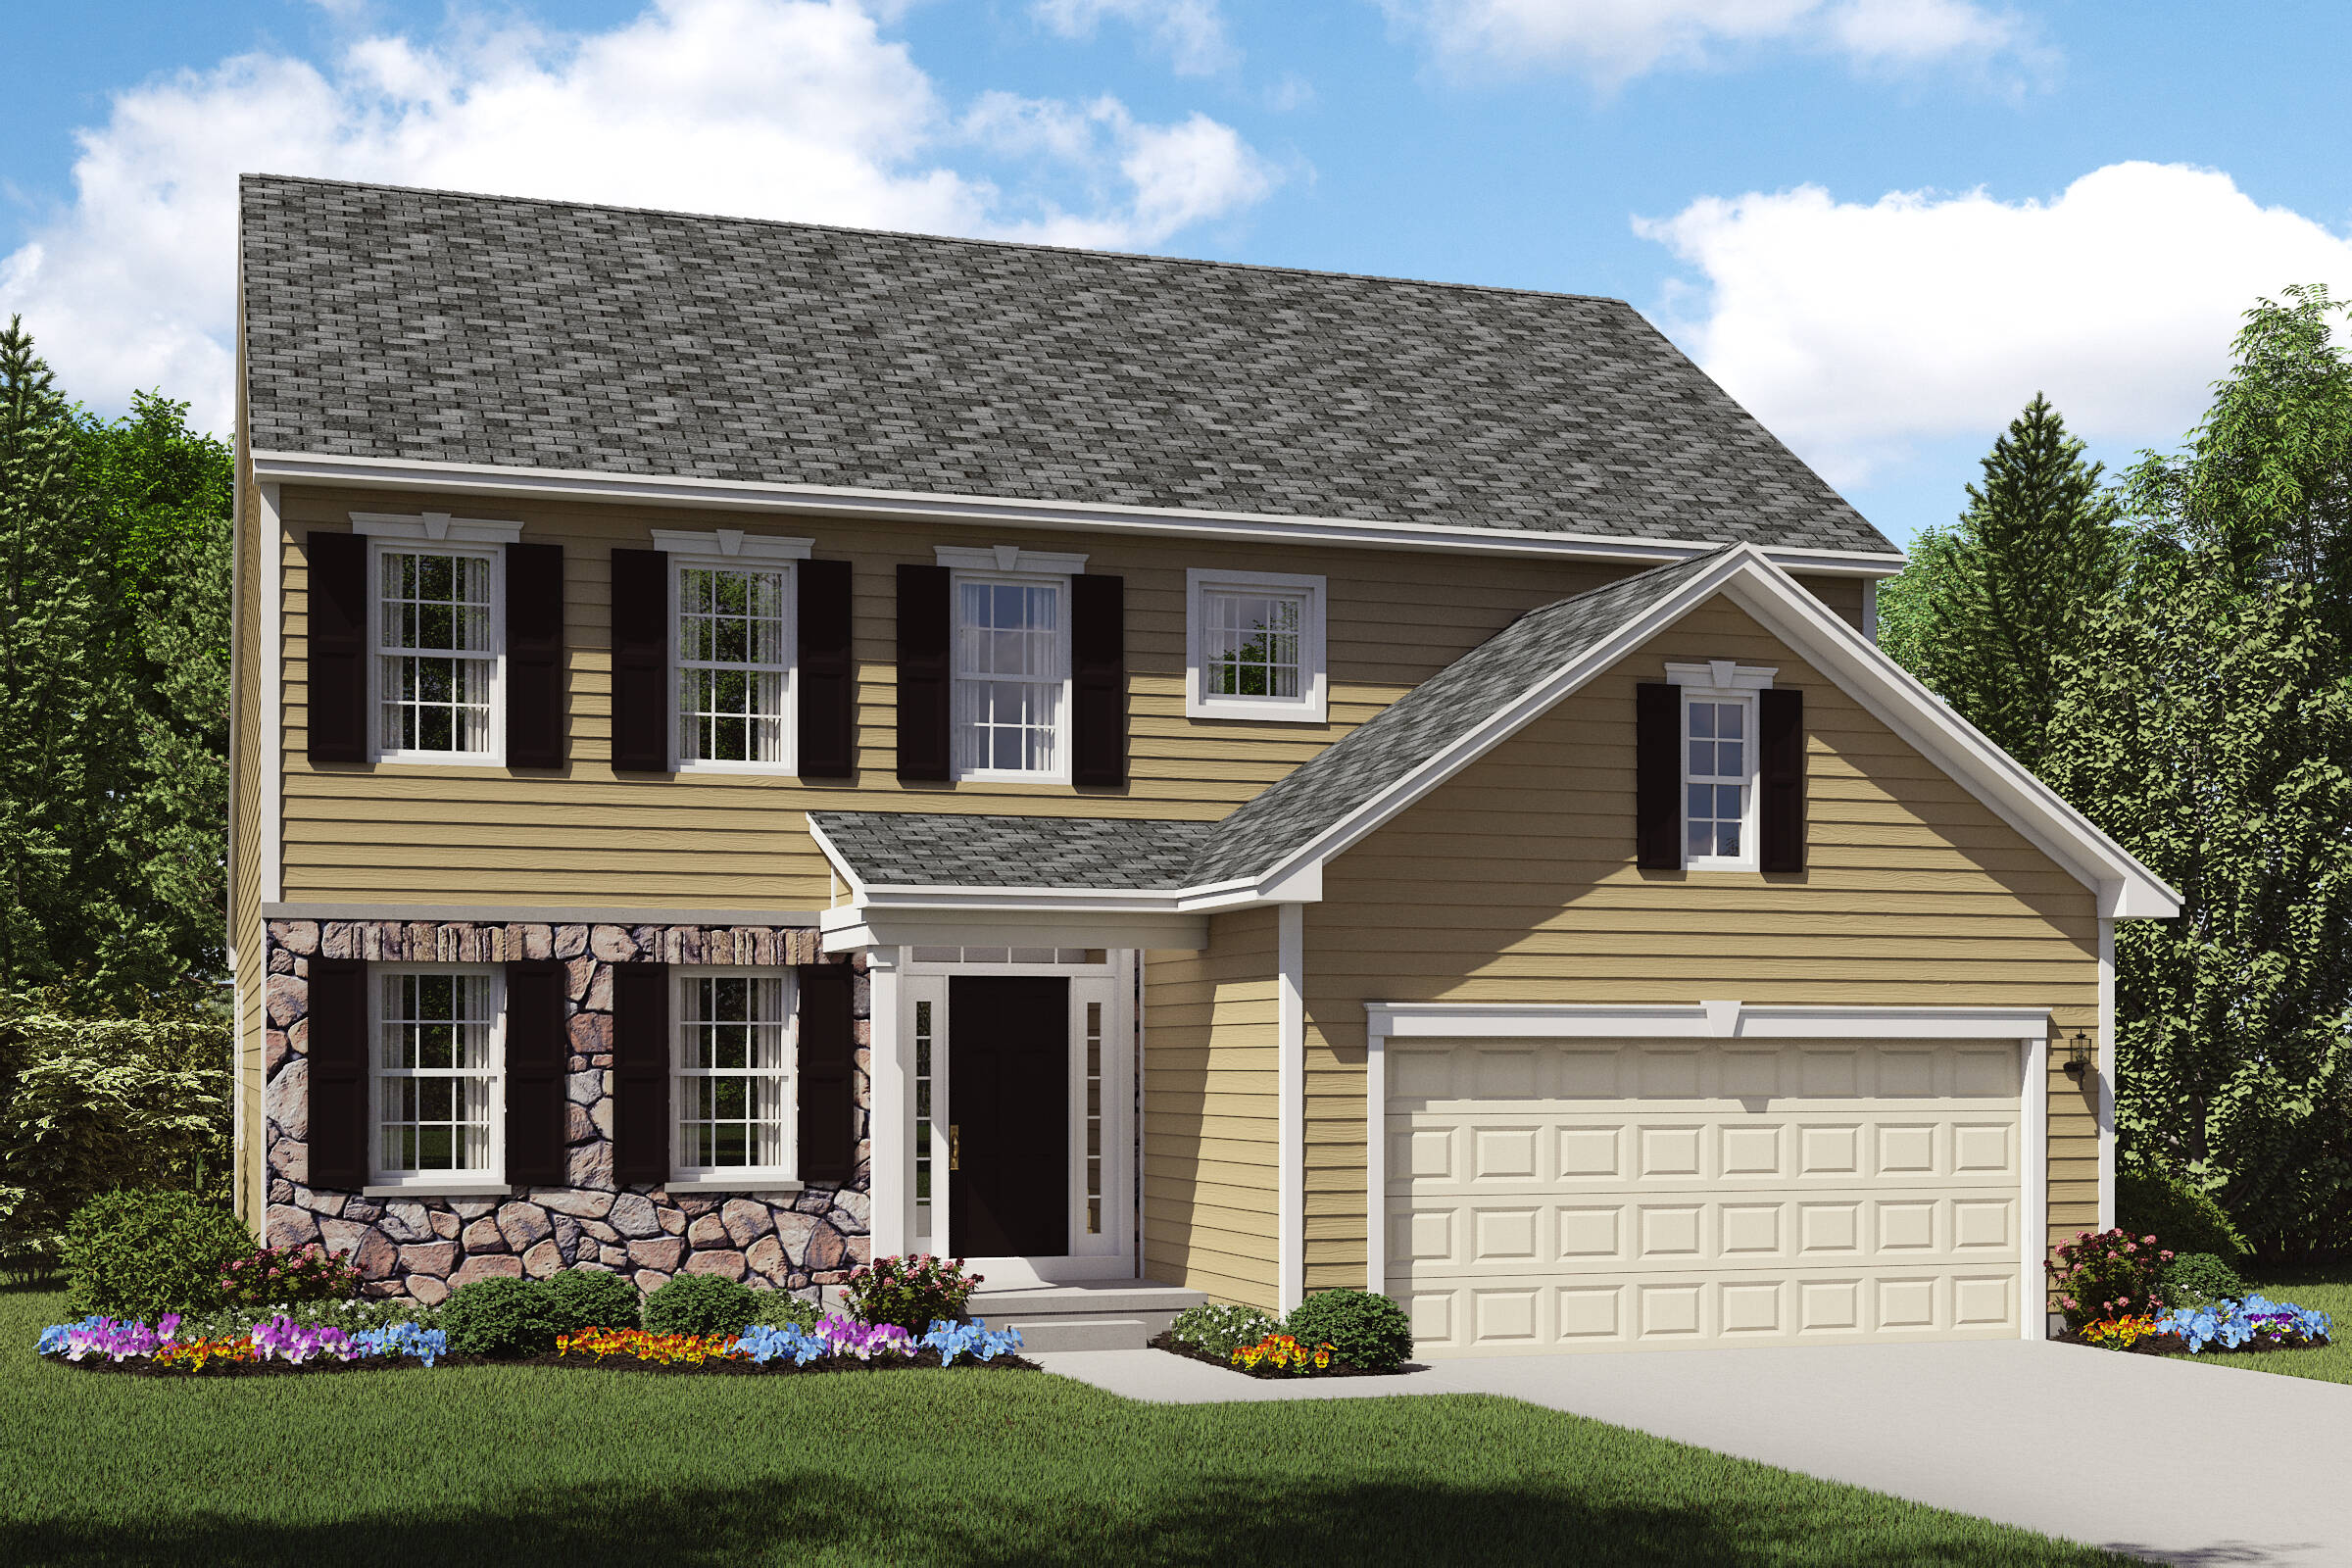 new home designs stone exterior oakridge a northeast ohio